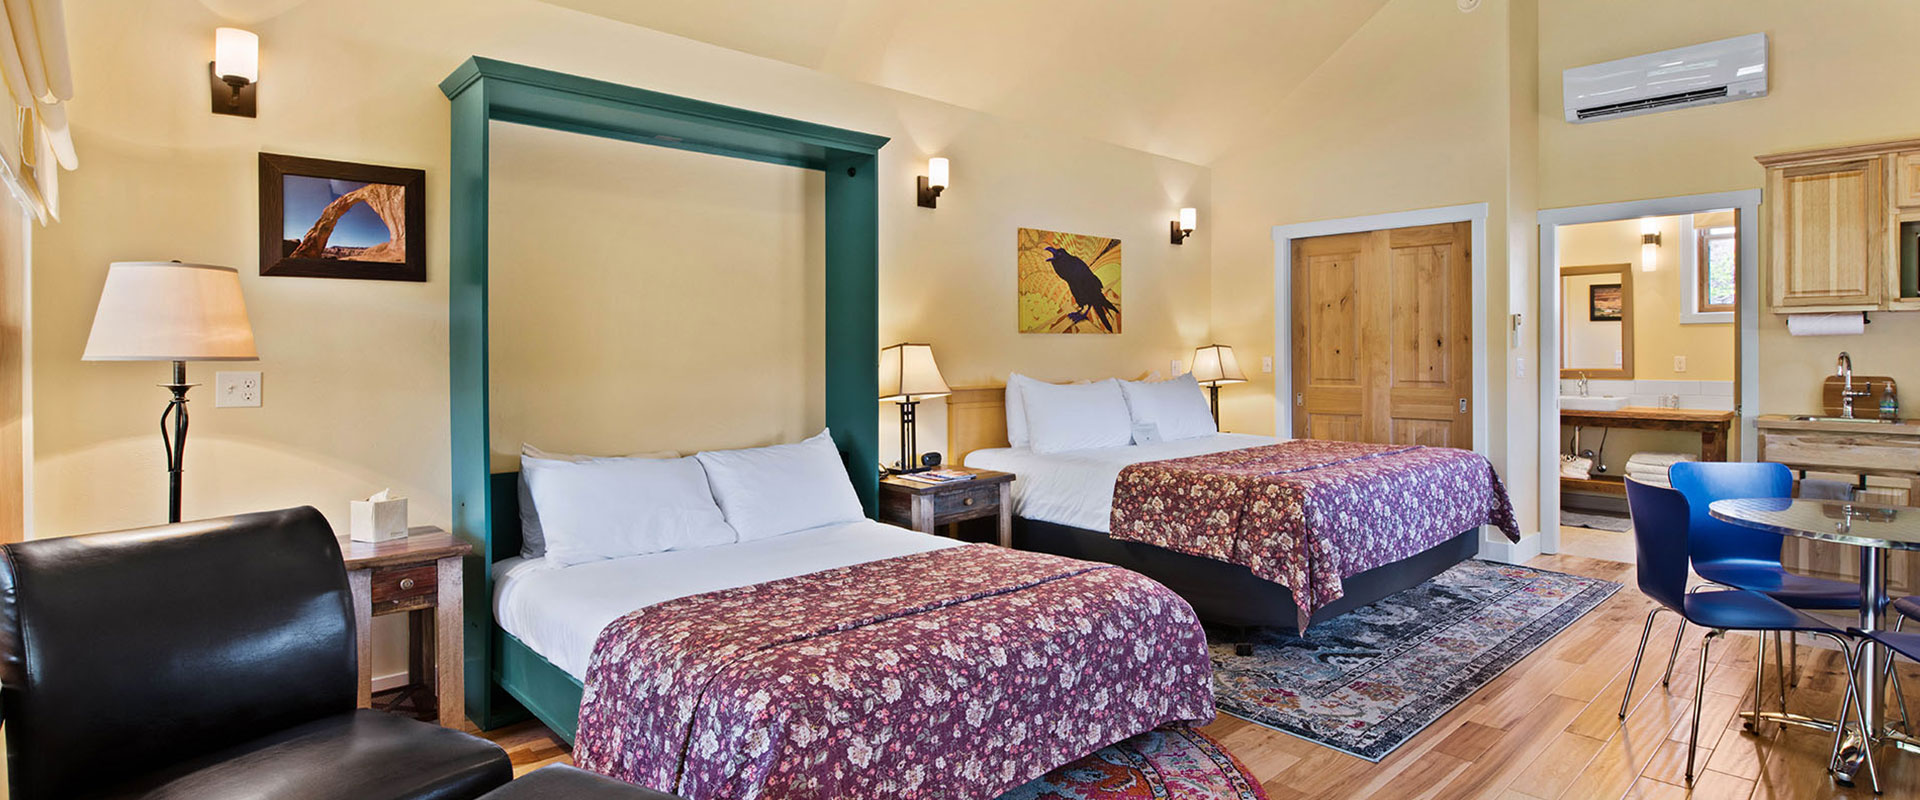 Corrugated metal siding provides an enclosure to the patio of a townhome at Moab Springs Ranch which includes black coated metal patio furniture, wood burning fireplace and barbecue.